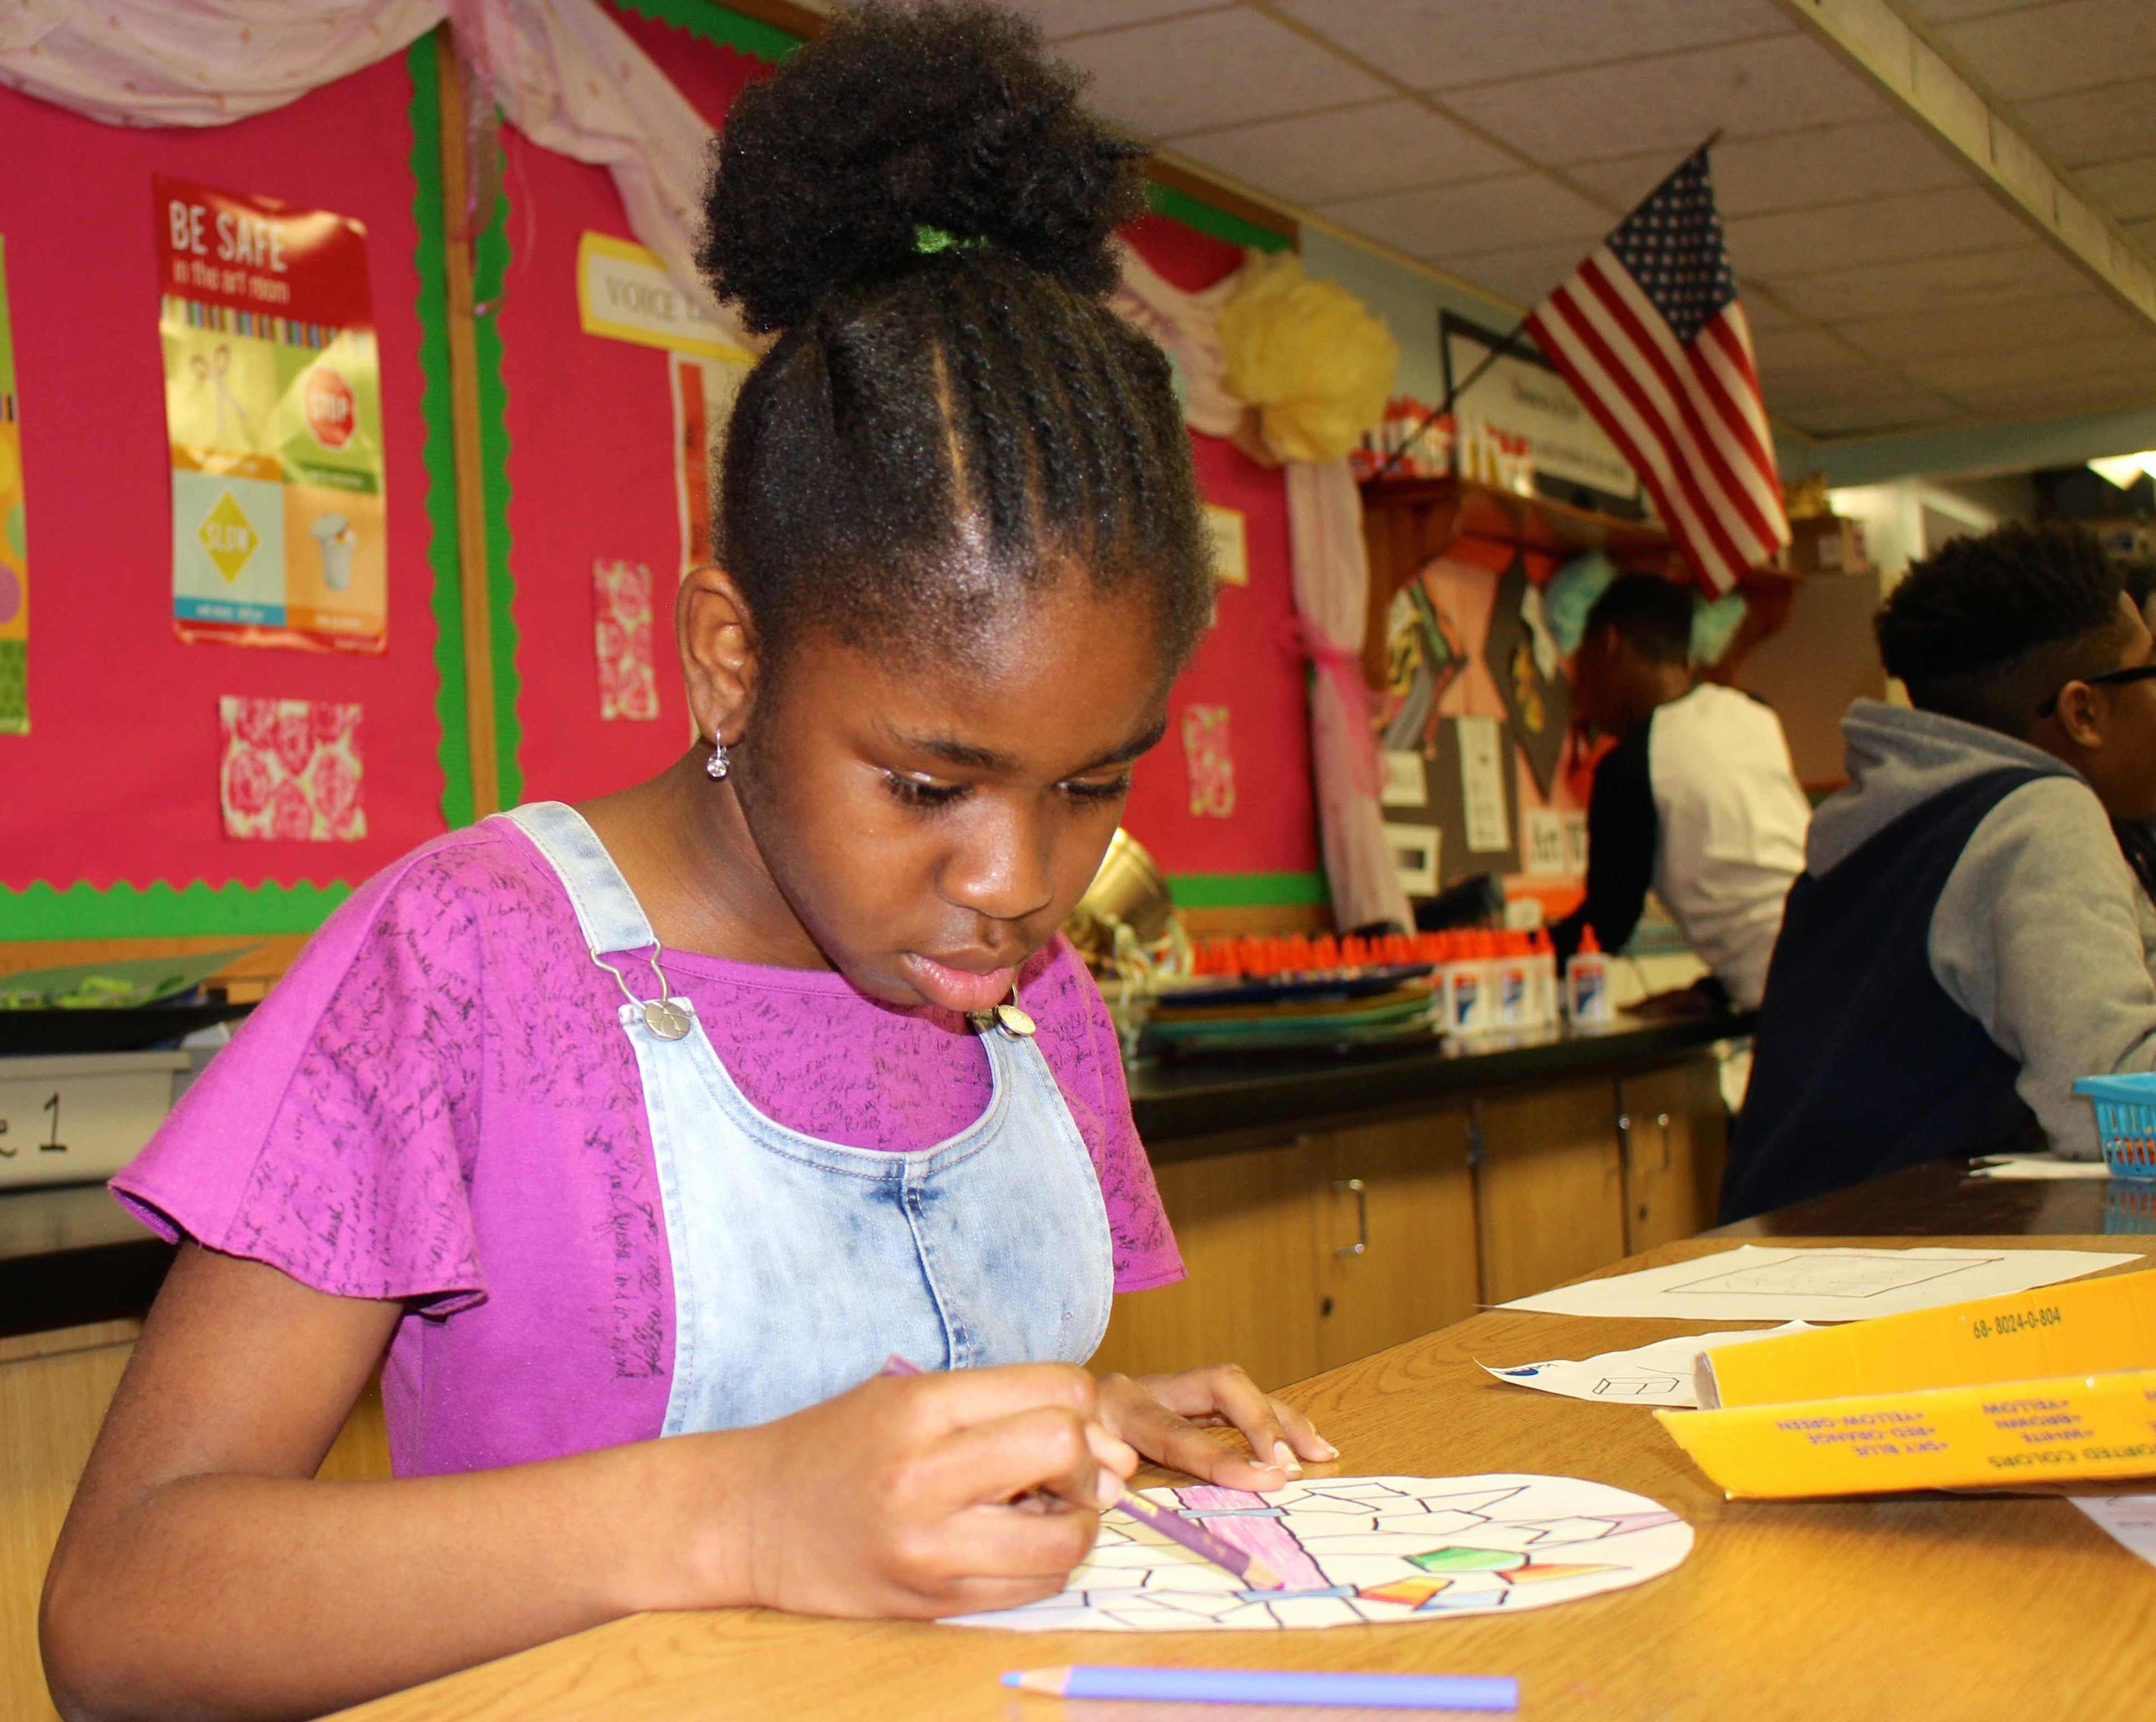 Sixth-grader Alexandria Charles used colored pencils to shade in her mandala during a recent math lesson at Gotham Avenue Elementary School.